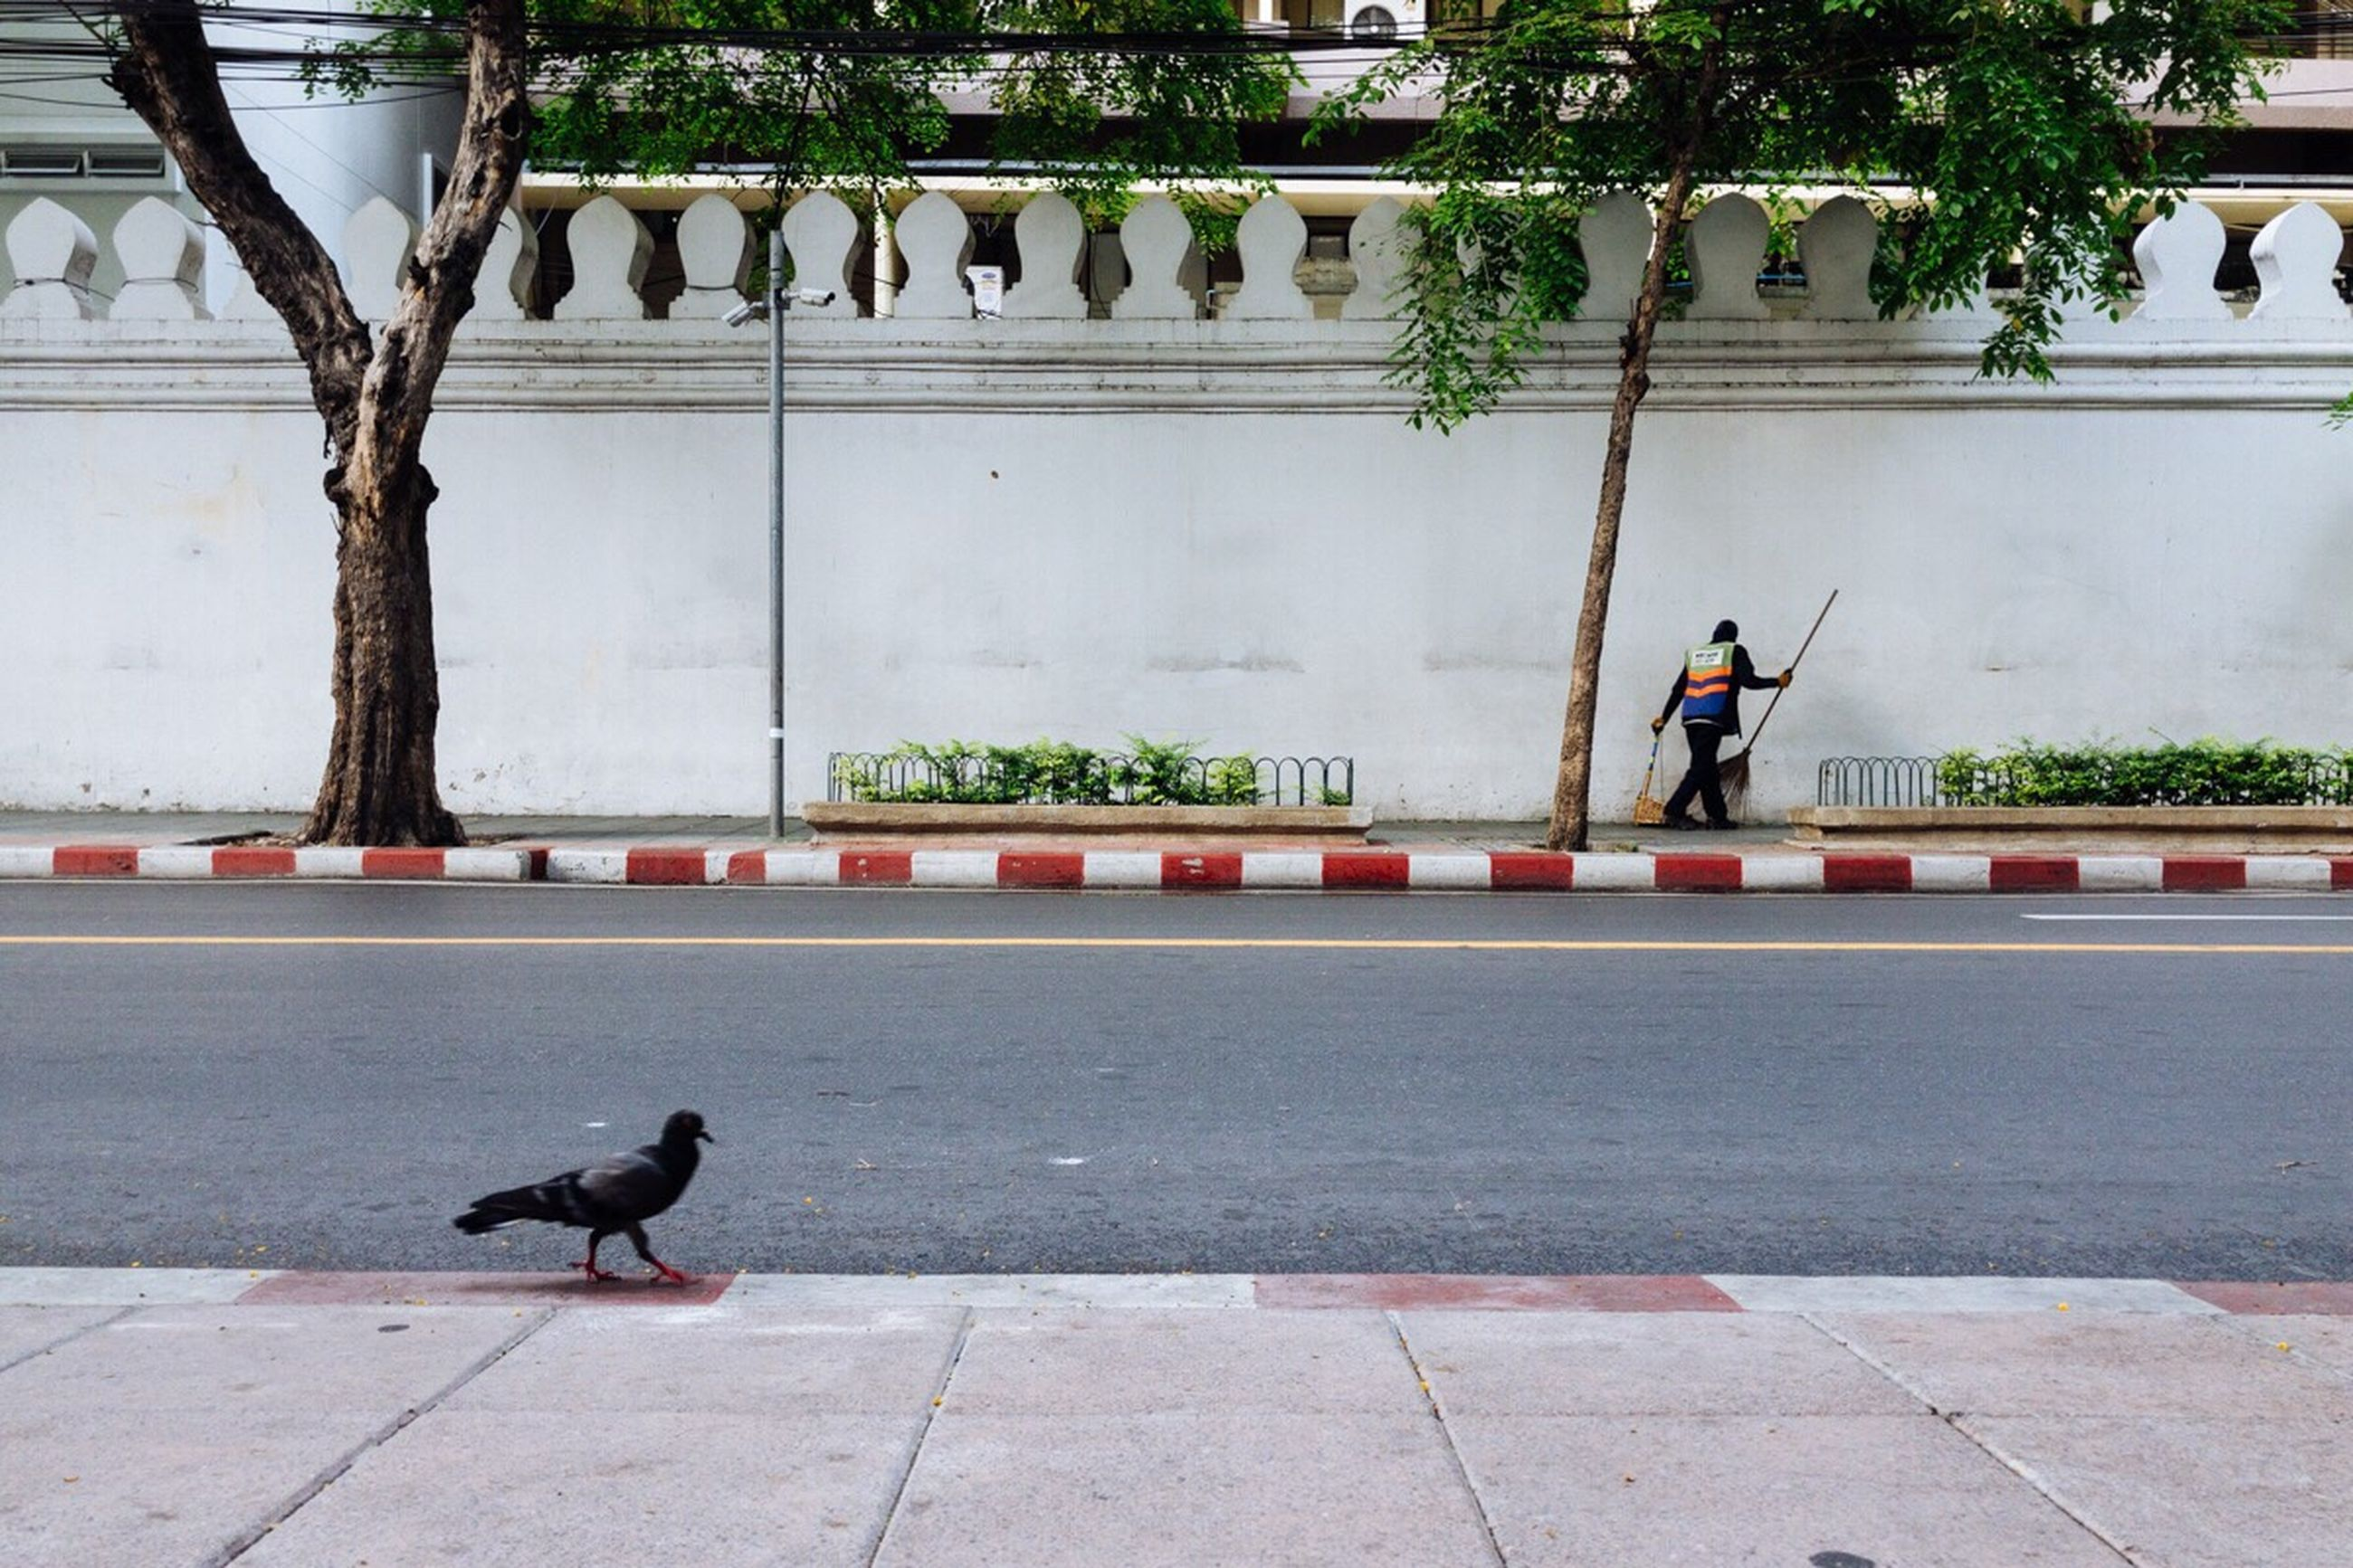 vertebrate, bird, one animal, city, day, full length, plant, footpath, architecture, road, street, real people, animals in the wild, animal wildlife, built structure, nature, pets, people, outdoors